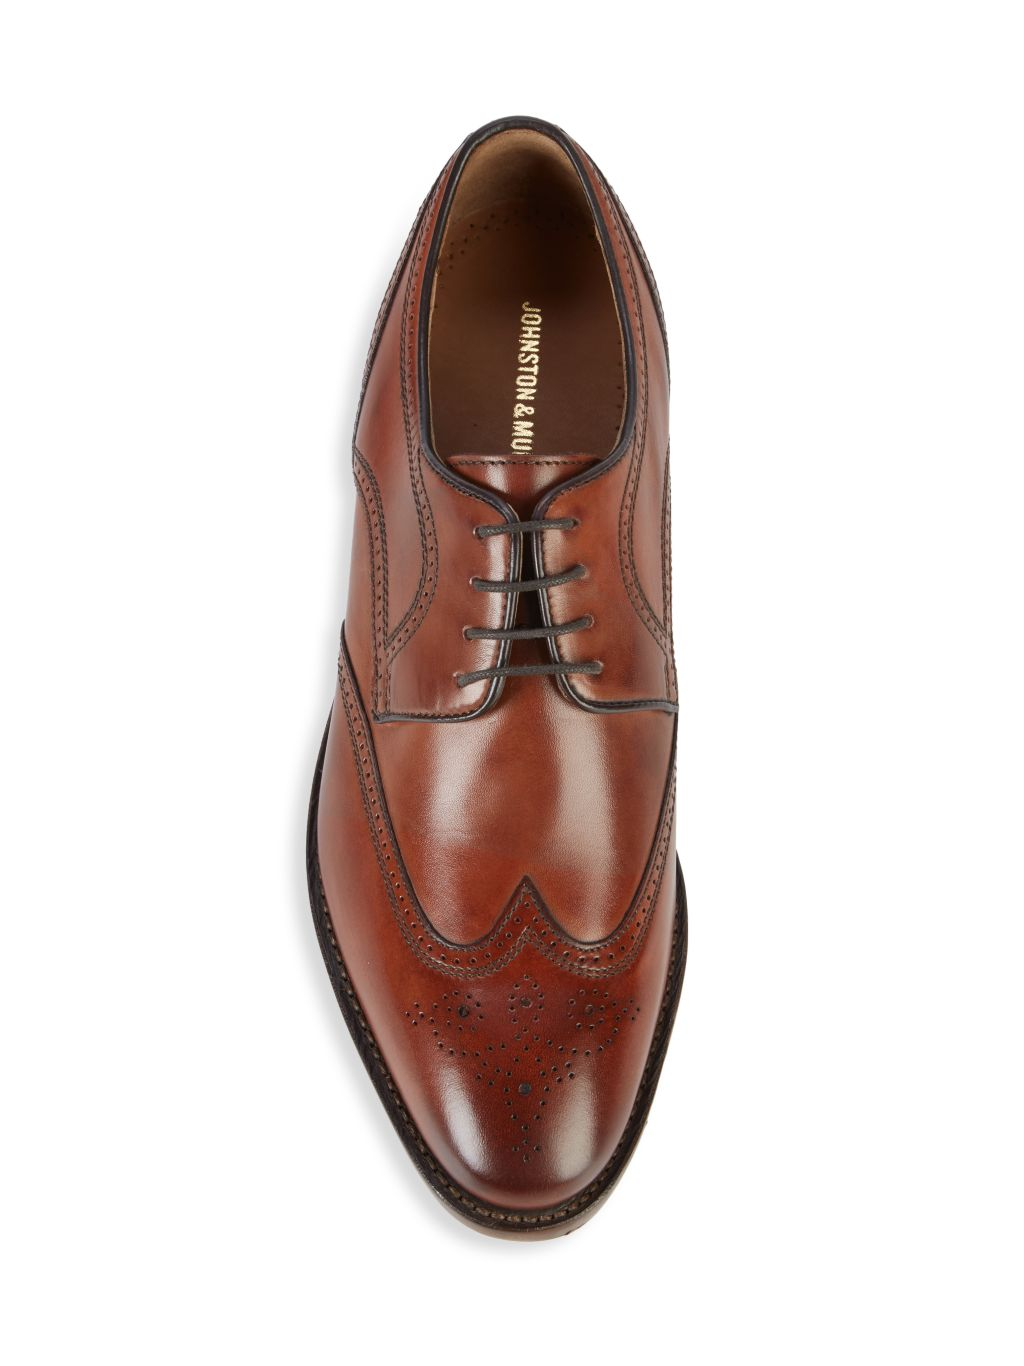 Johnston & Murphy Collins Leather Wingtip Derby Shoes